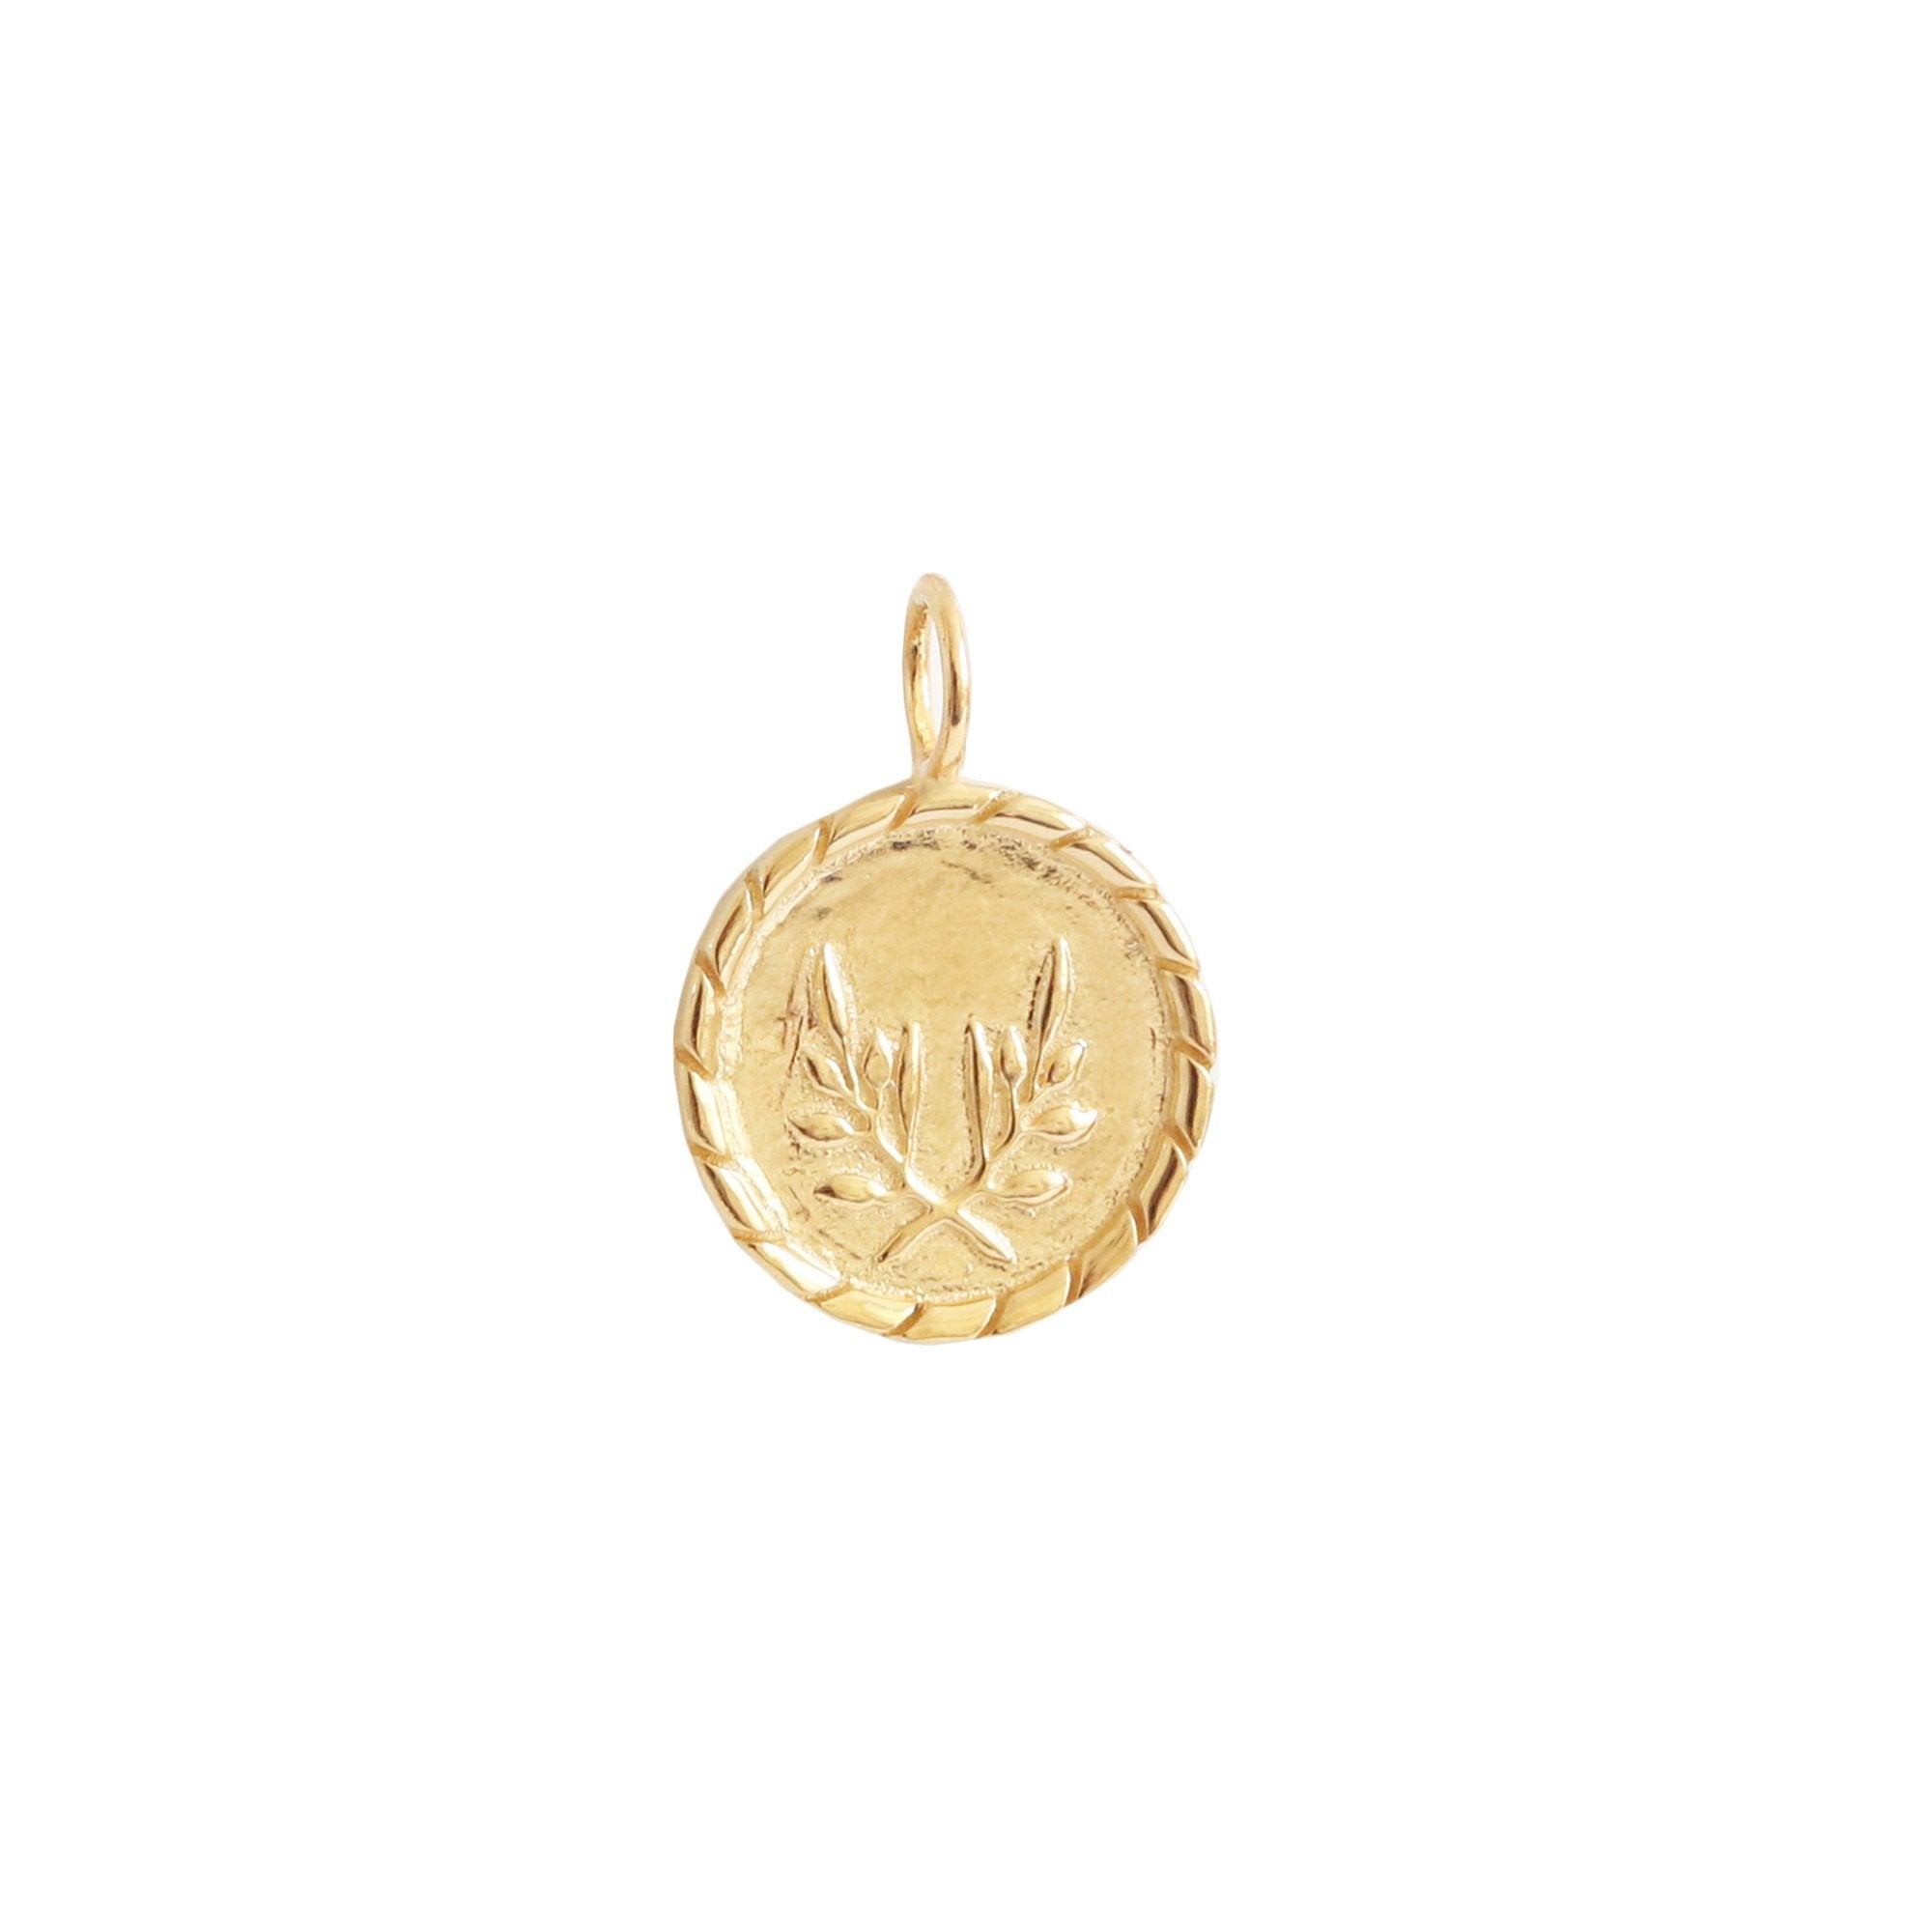 FRAICHE INSPIRE TOKEN PENDANT - GOLD - SO PRETTY CARA COTTER